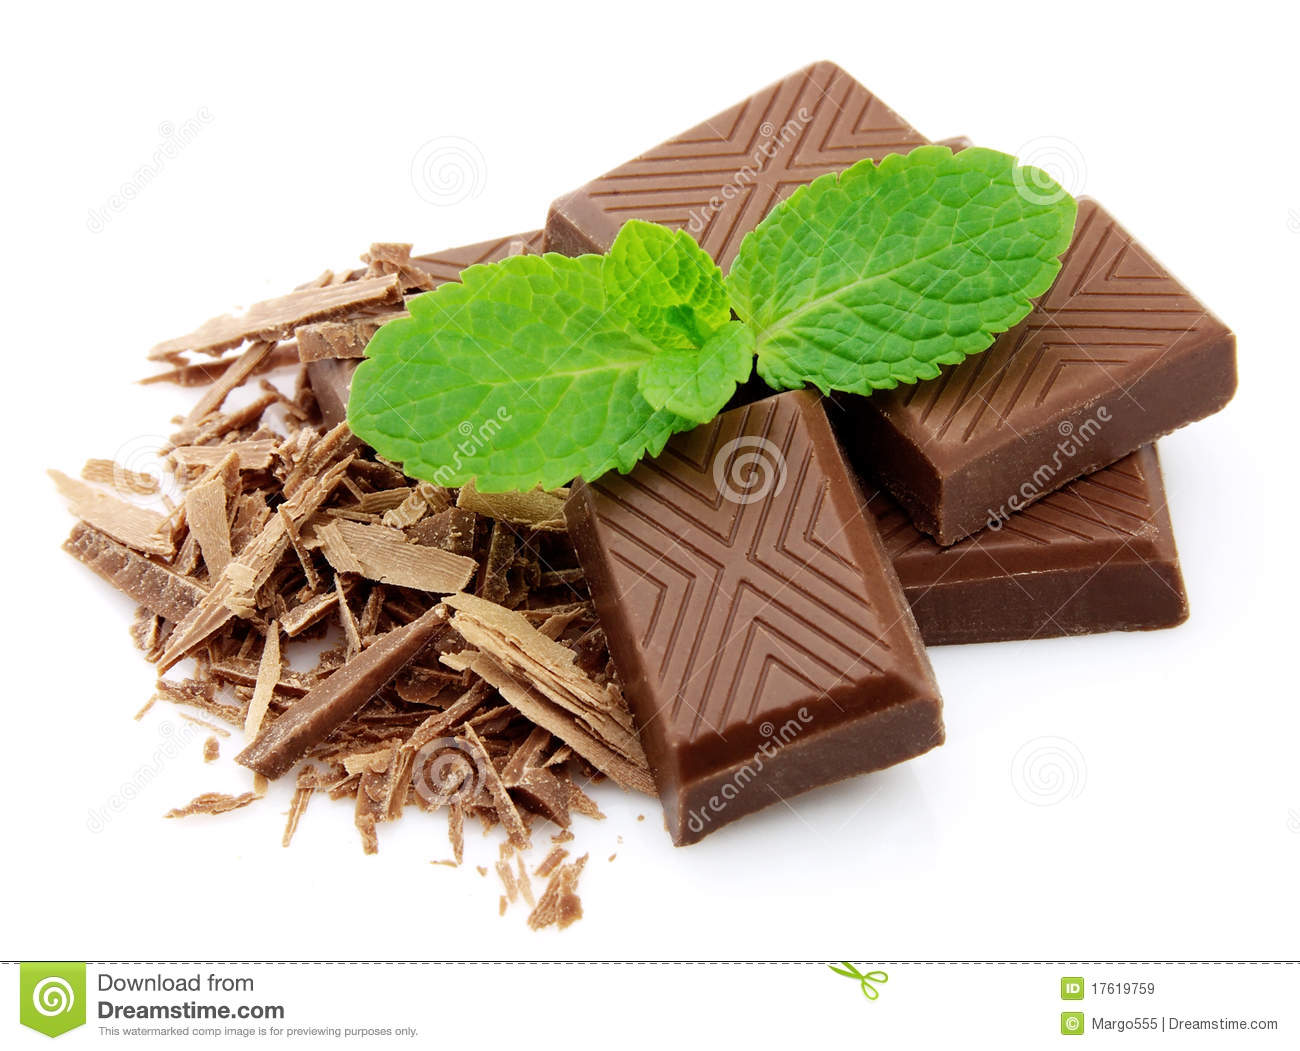 how to use chocolate mint